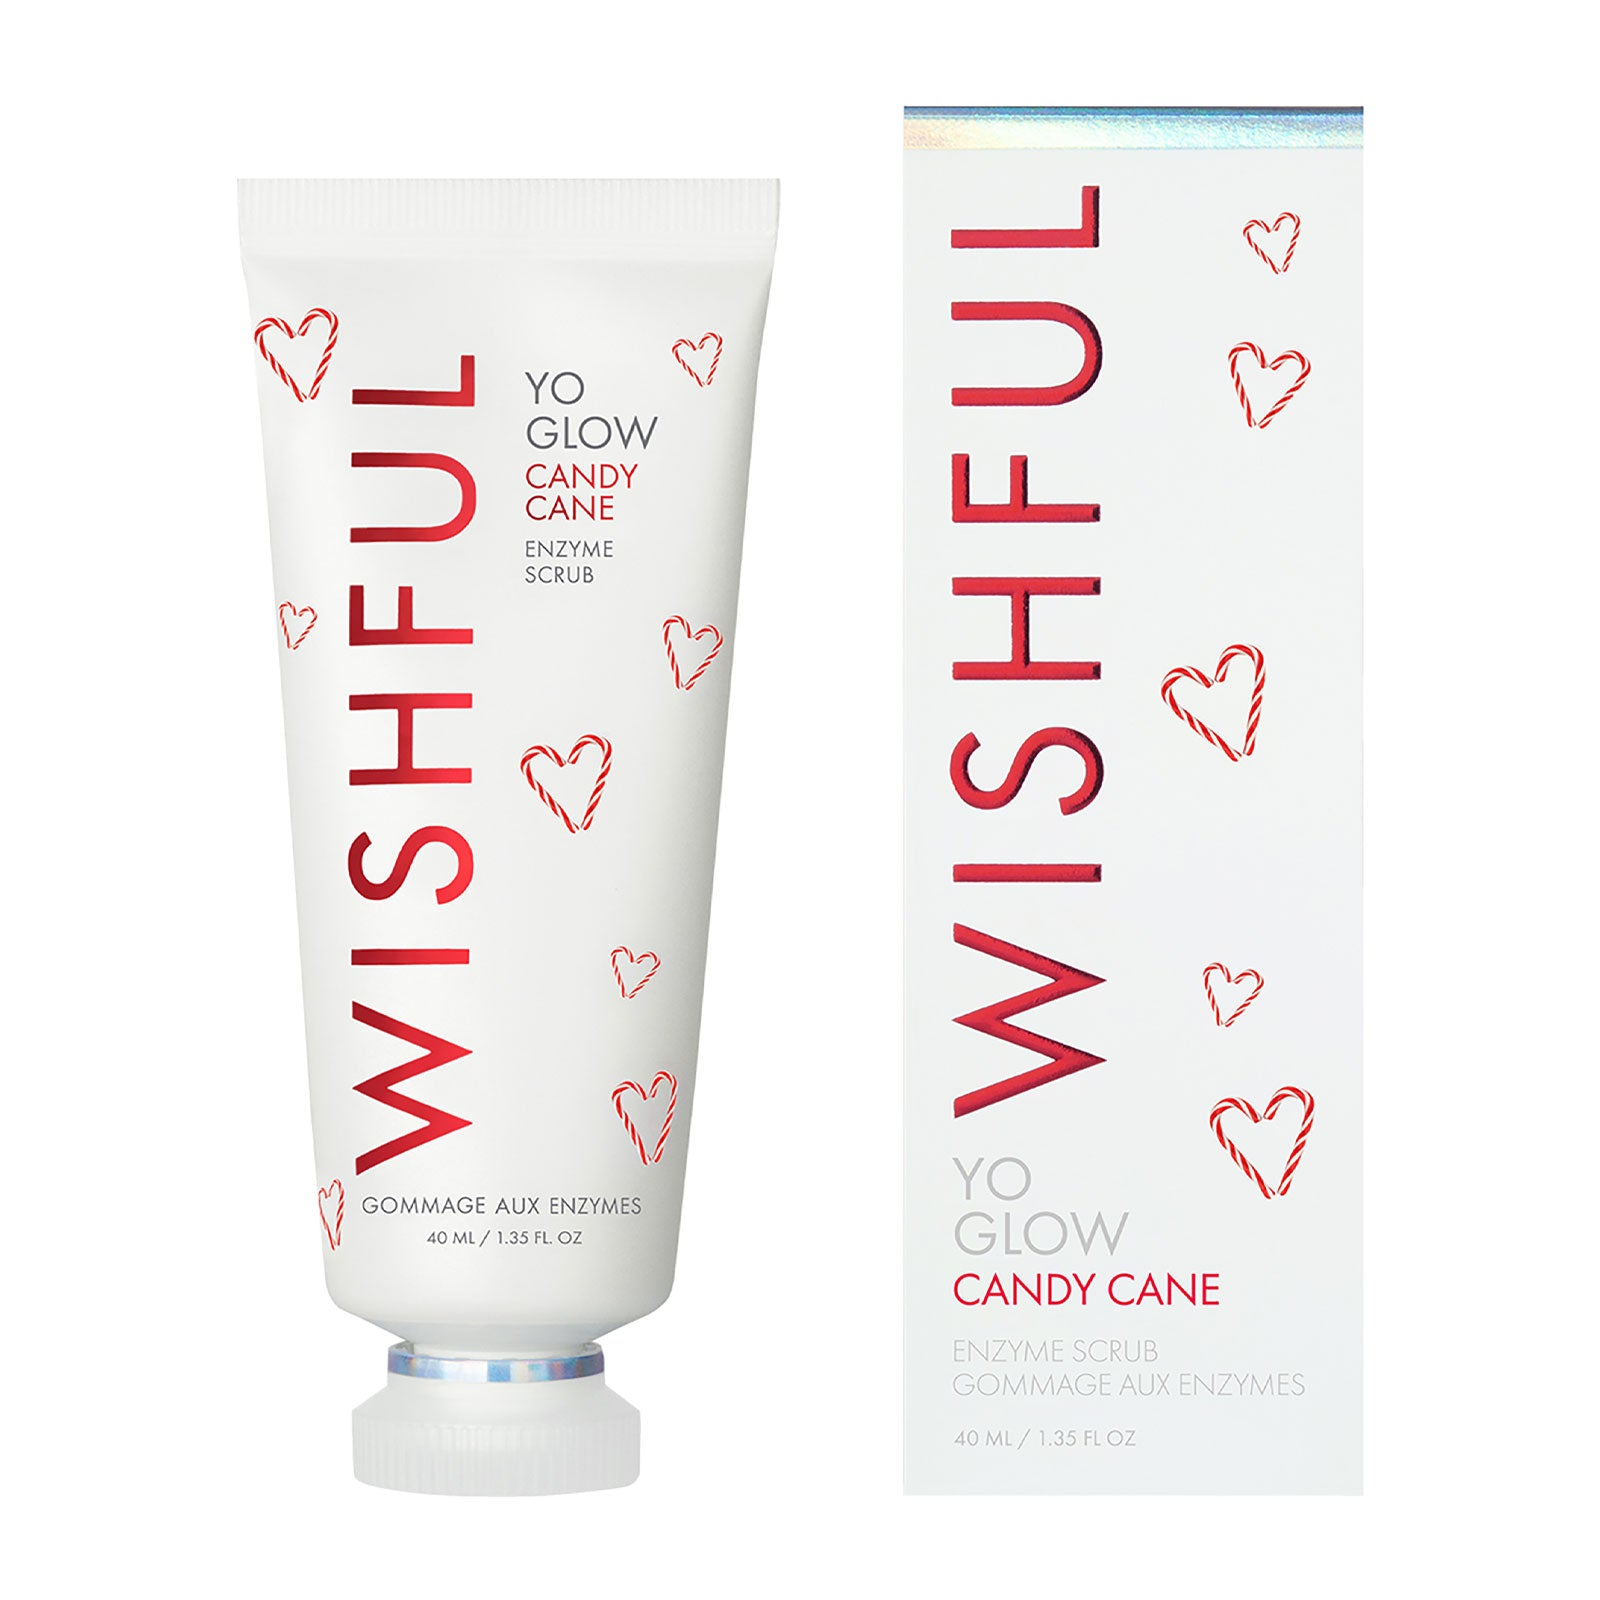 Wishful Yo Glow Candy Cane Enzyme Scrub 40ml